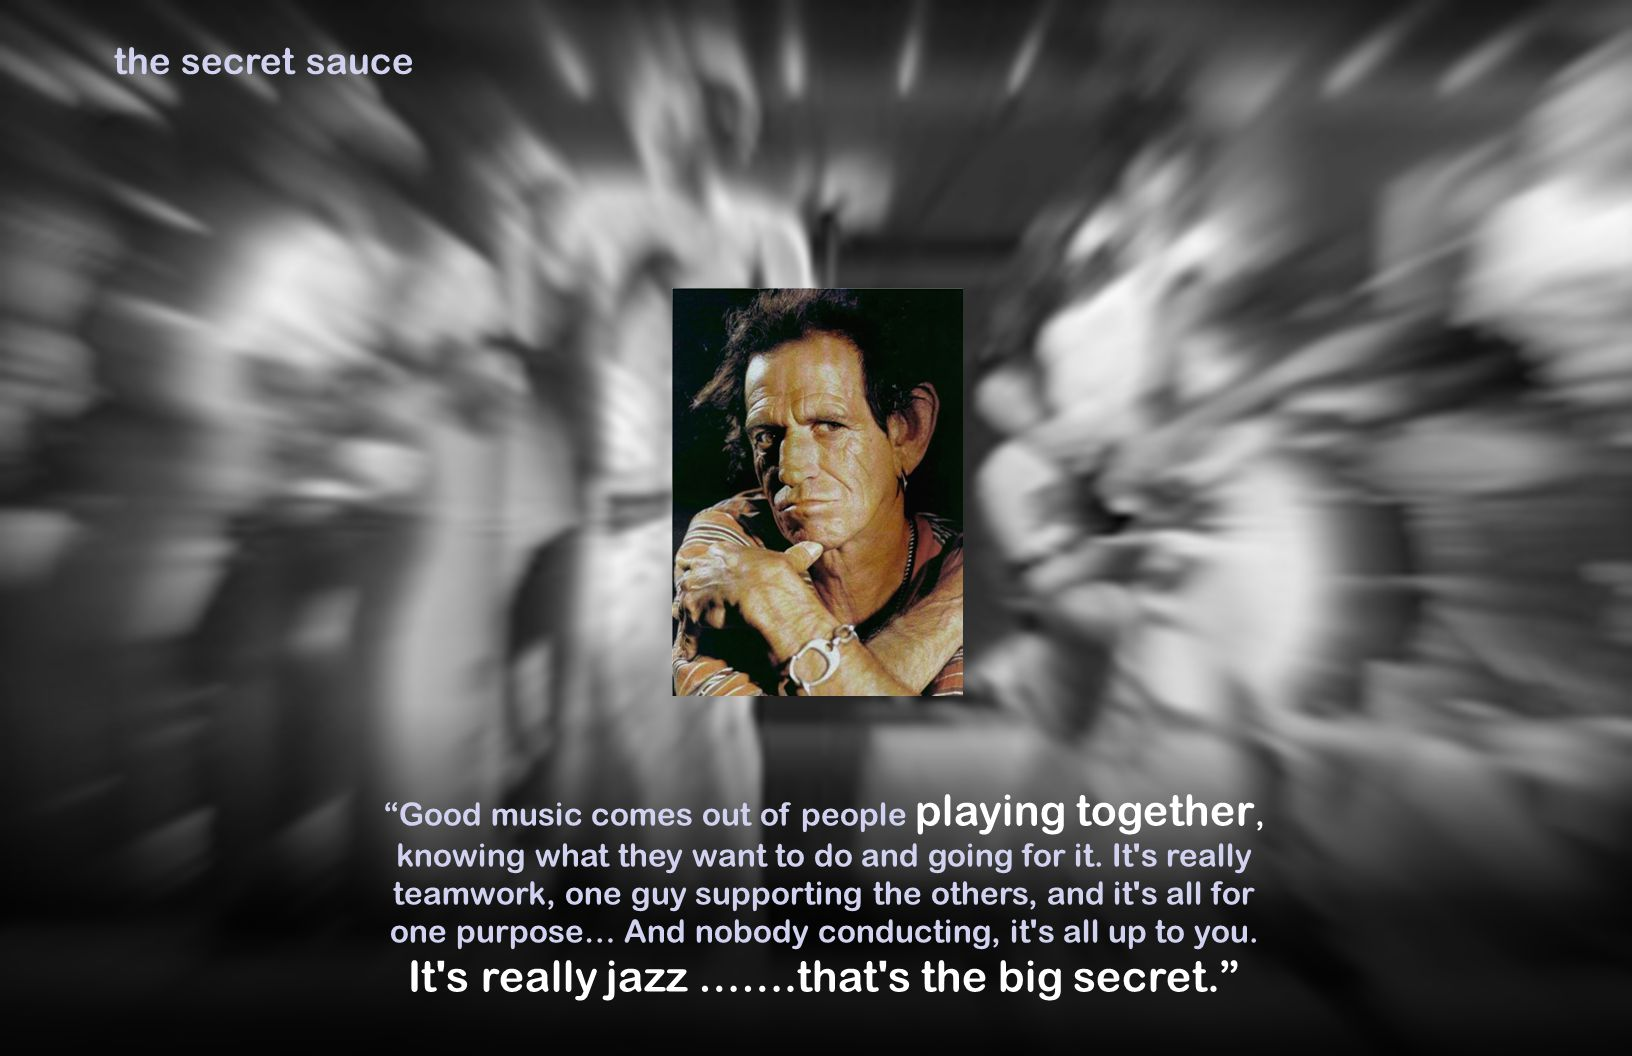 the secret sauce Good music comes out of people playing together, knowing what they want to do and going for it.